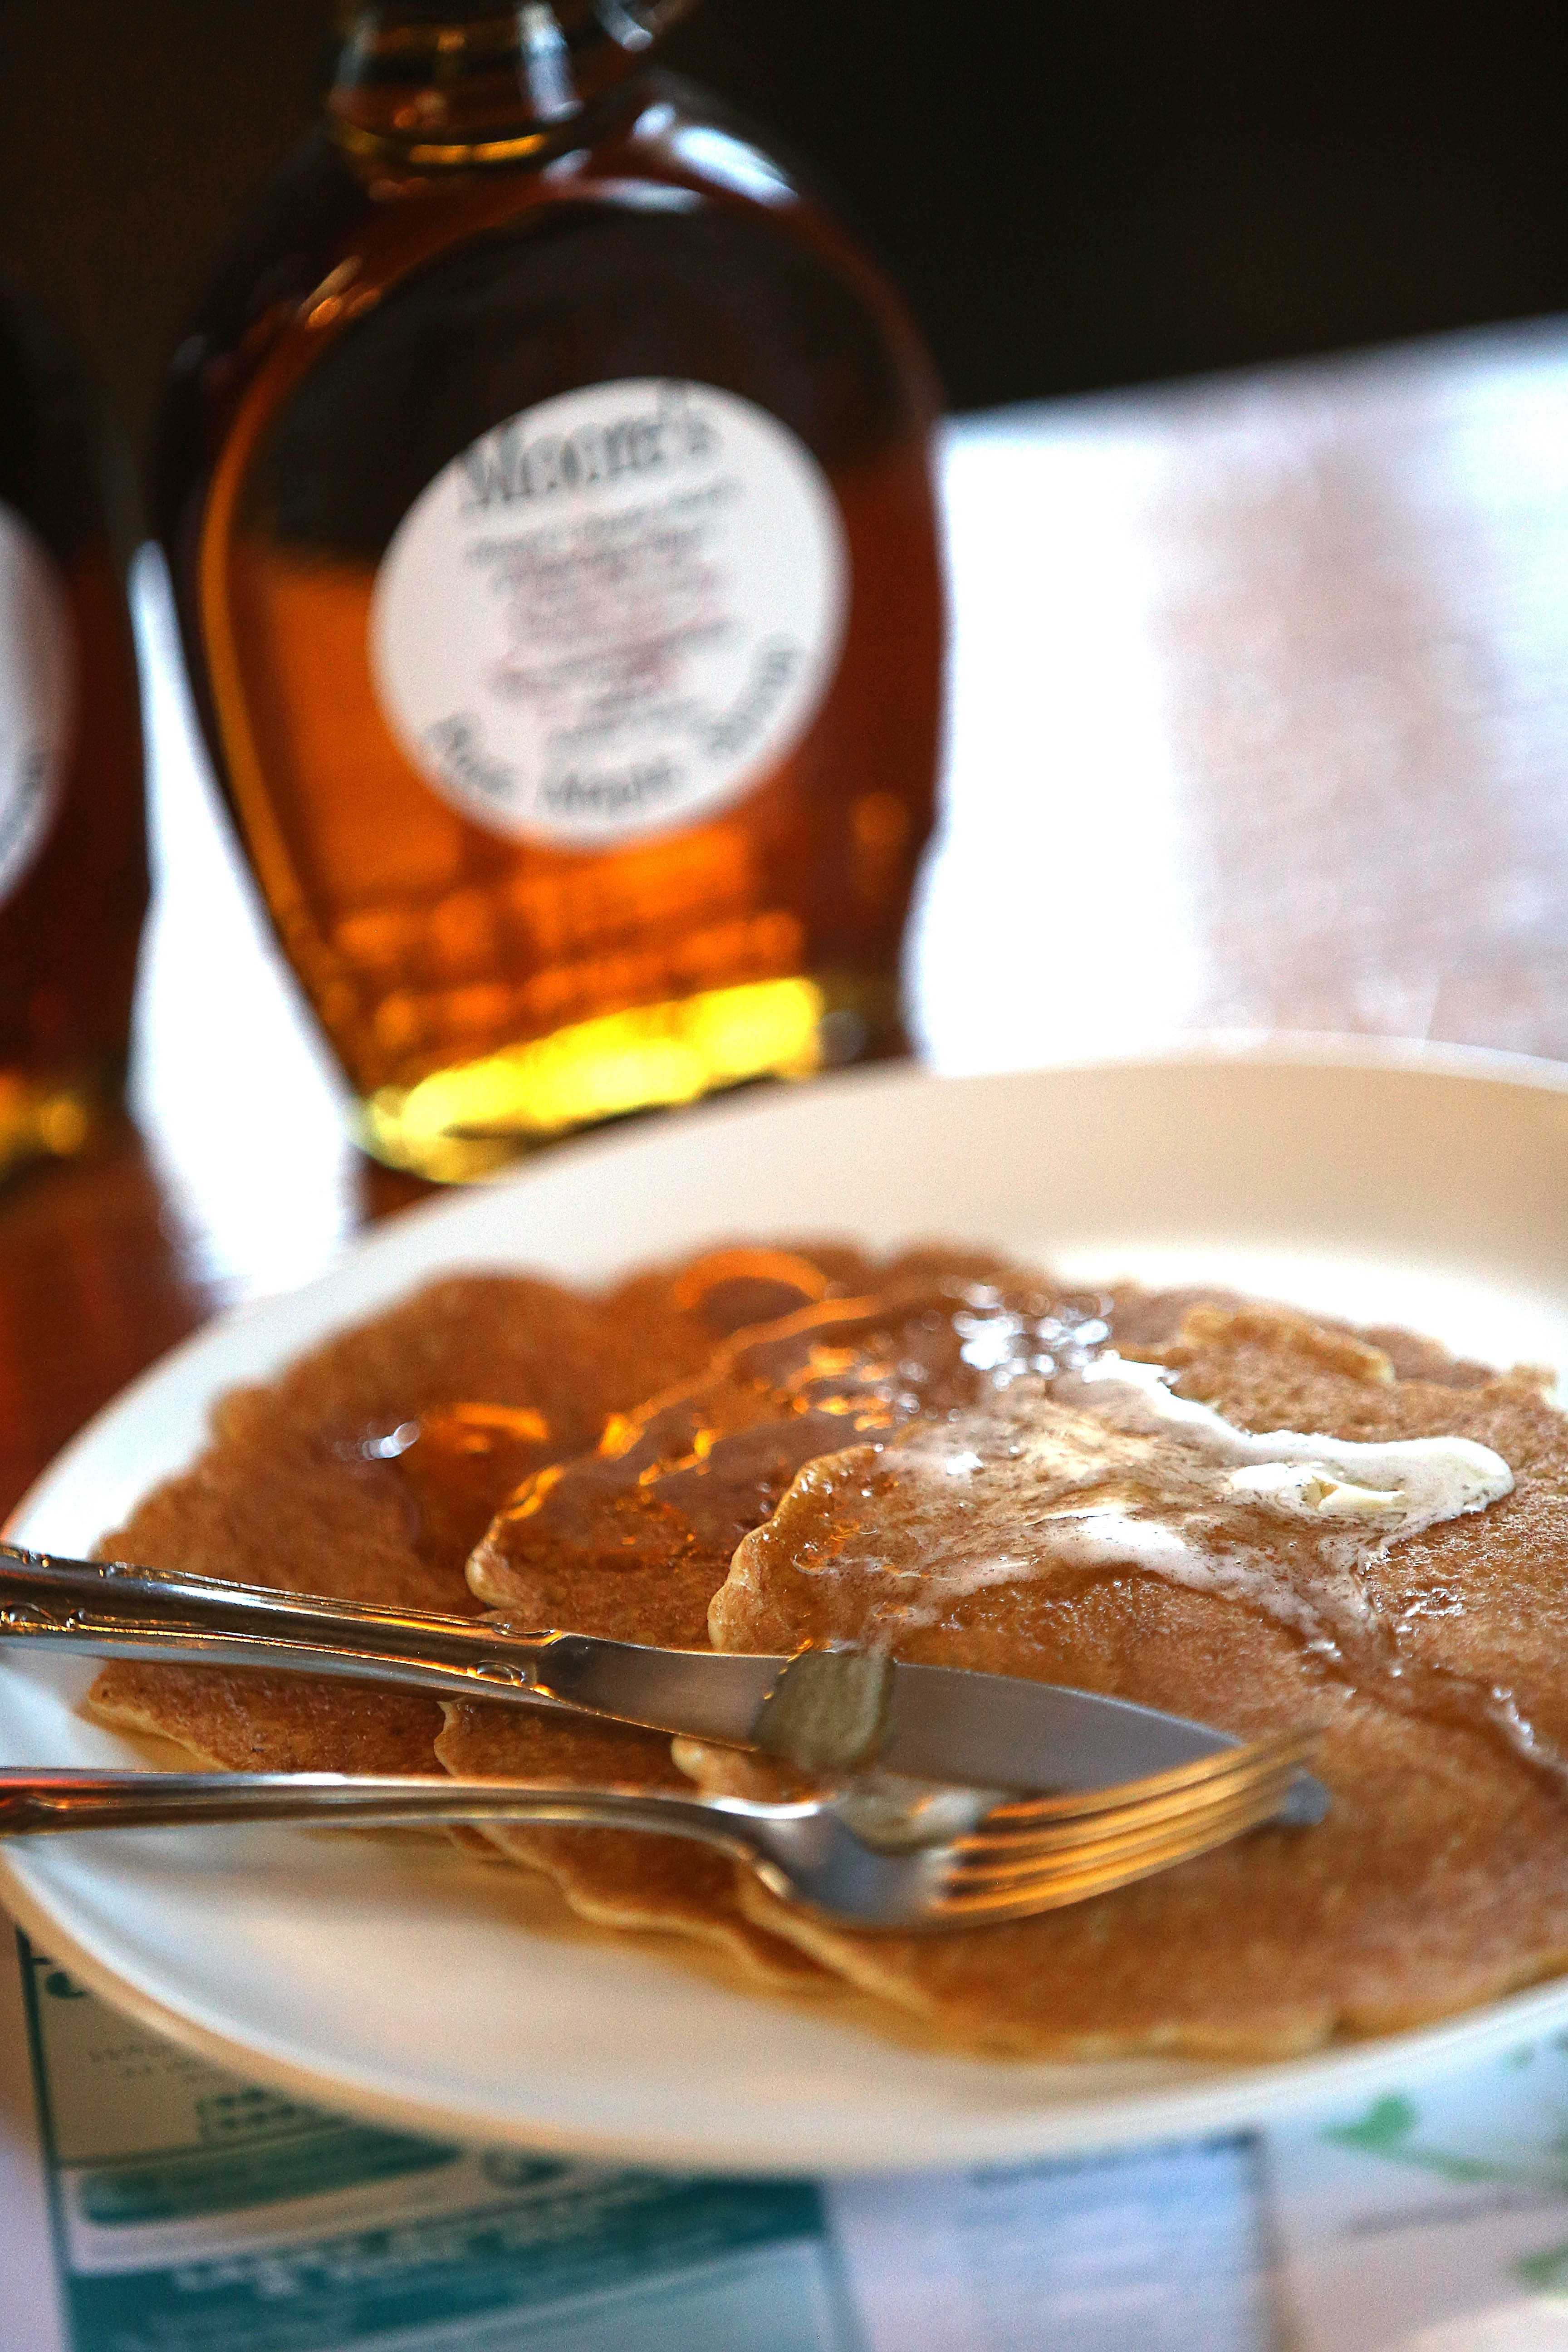 It takes about 1,600 gallons of sap to make 35 to 40 gallons of syrup, said farmer Earl Moore.